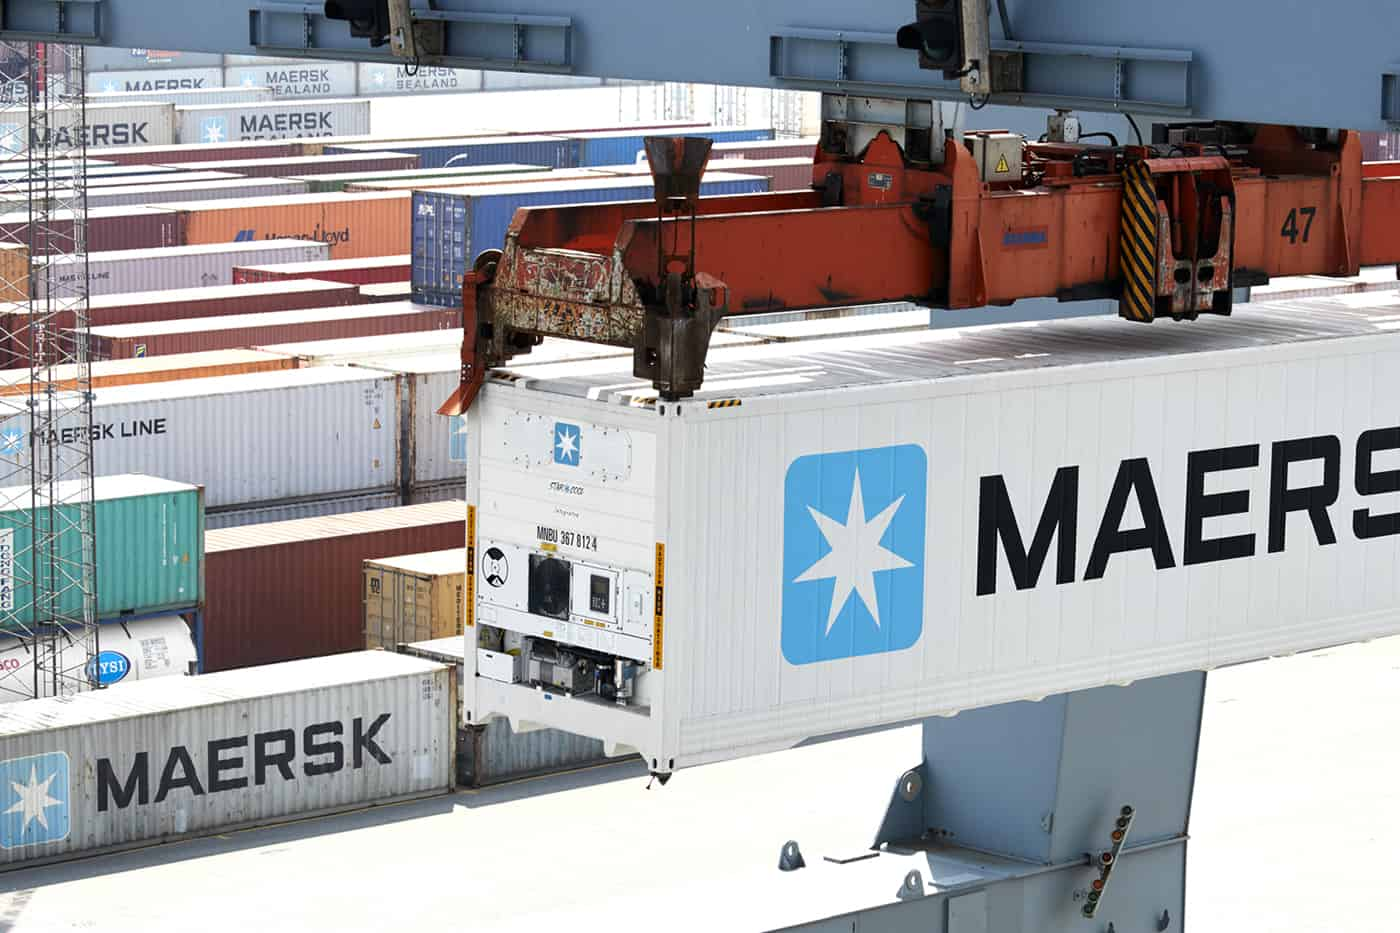 Maersk adopts new protective IT measures